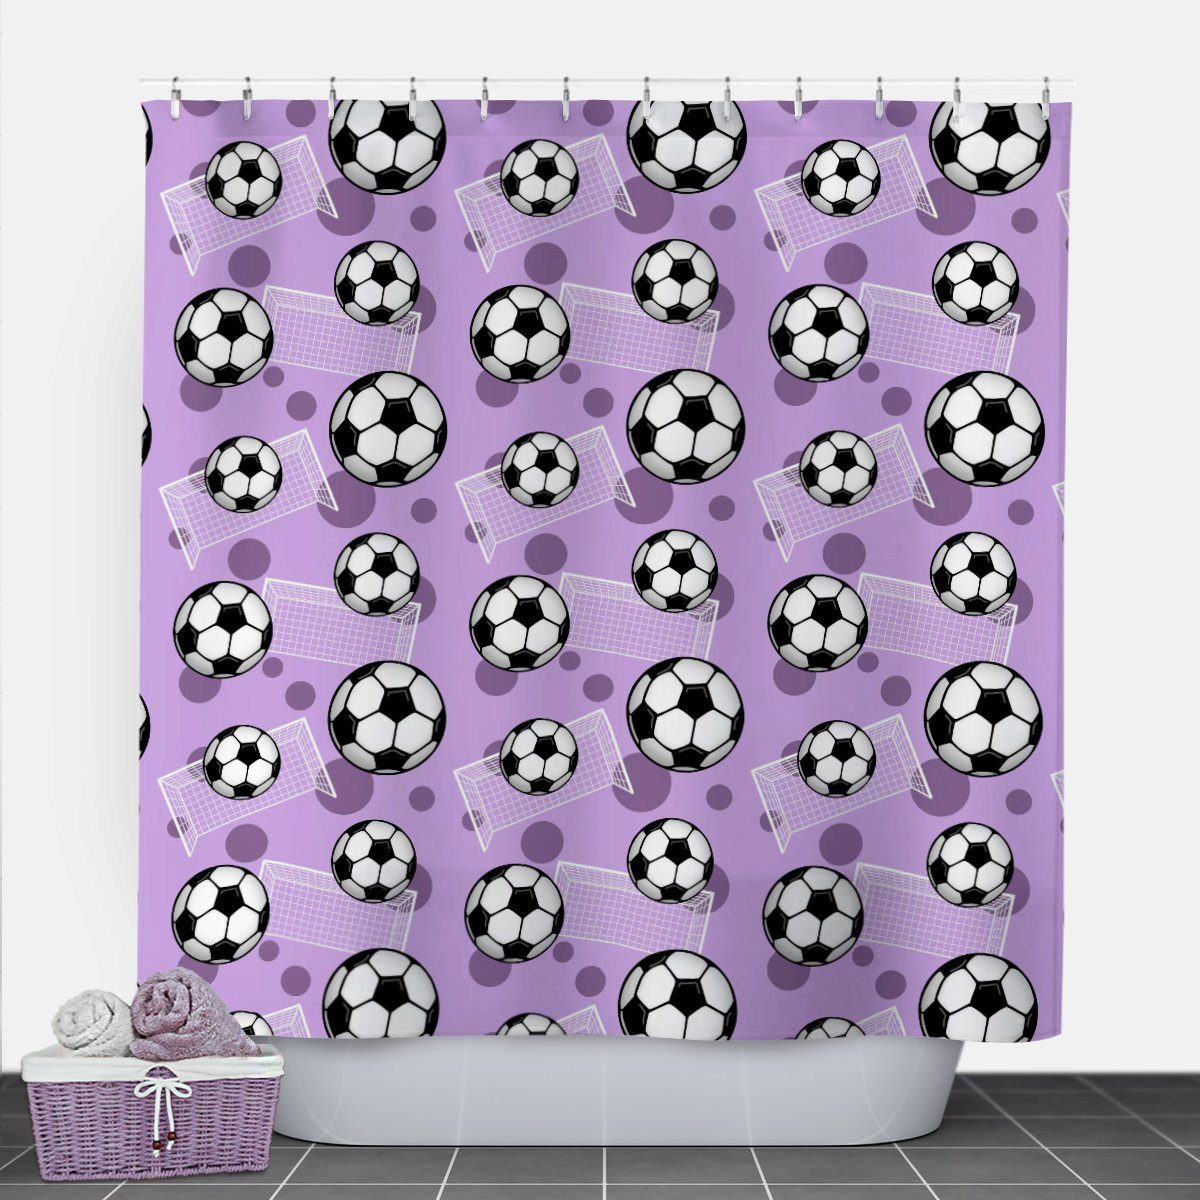 Shop for Shower Curtains at Speckle Rock